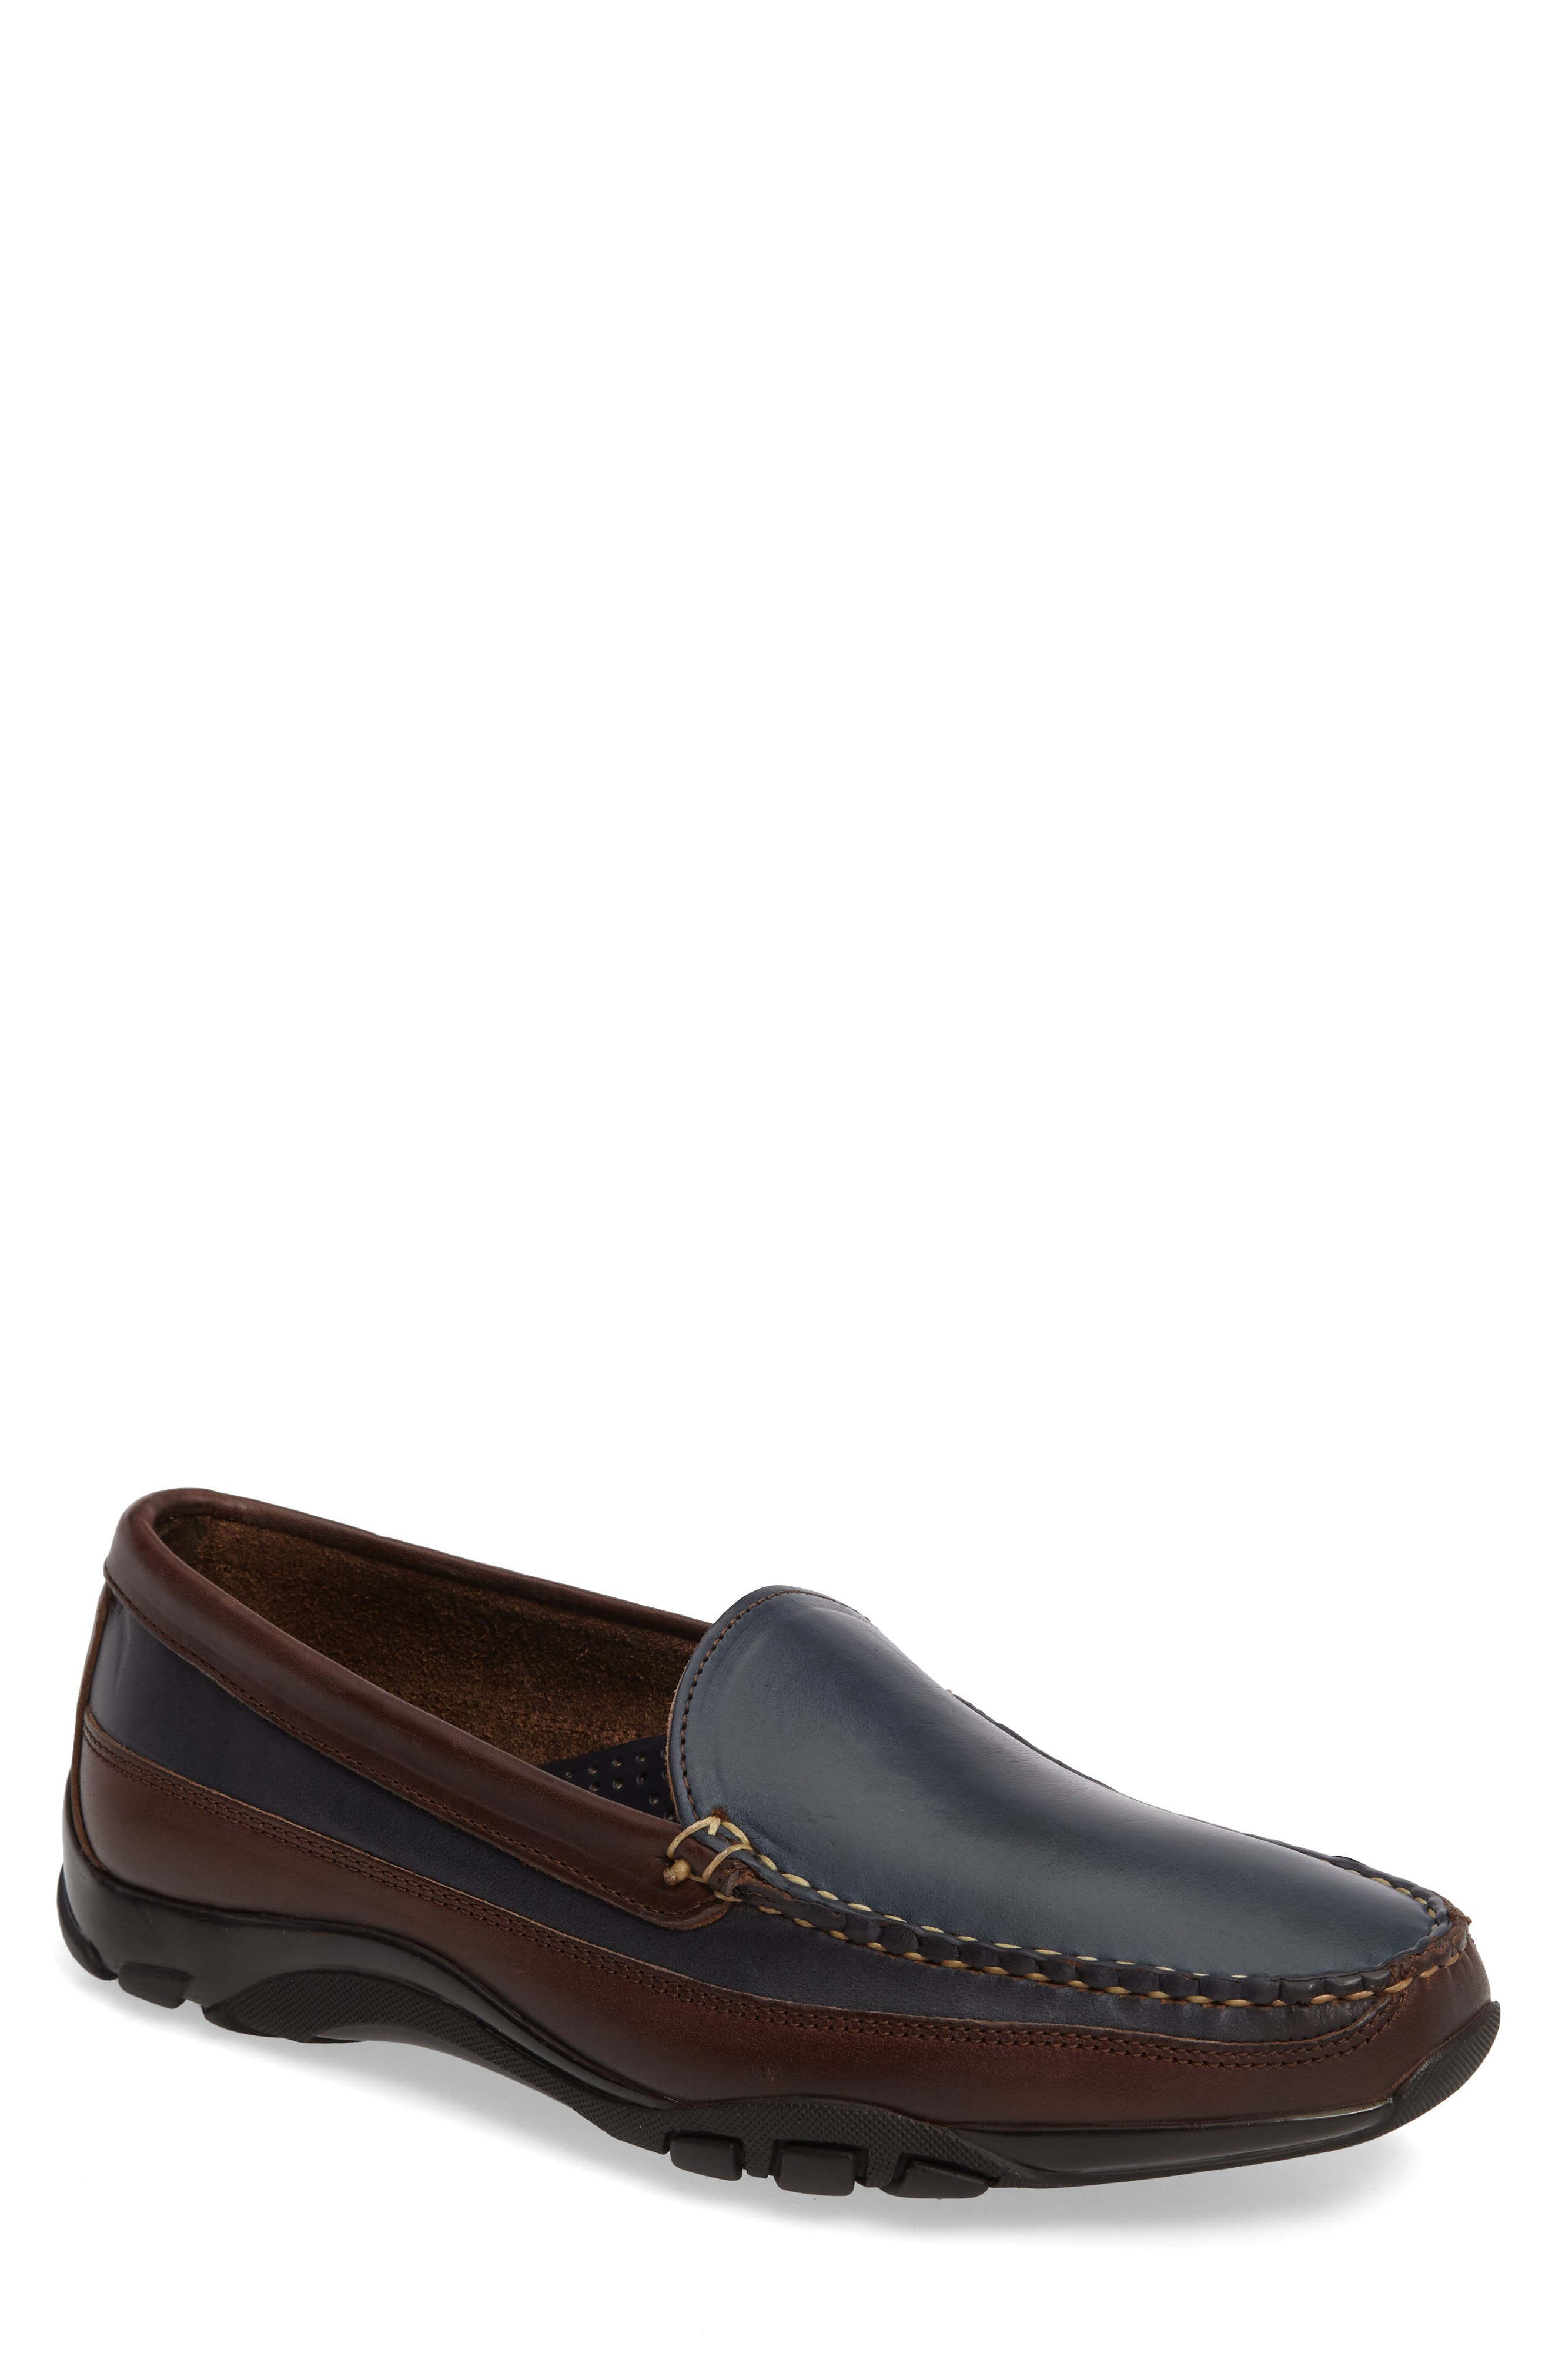 ALLEN EDMONDS, 'Boulder' Driving Loafer, Main thumbnail 1, color, NAVY/ BROWN